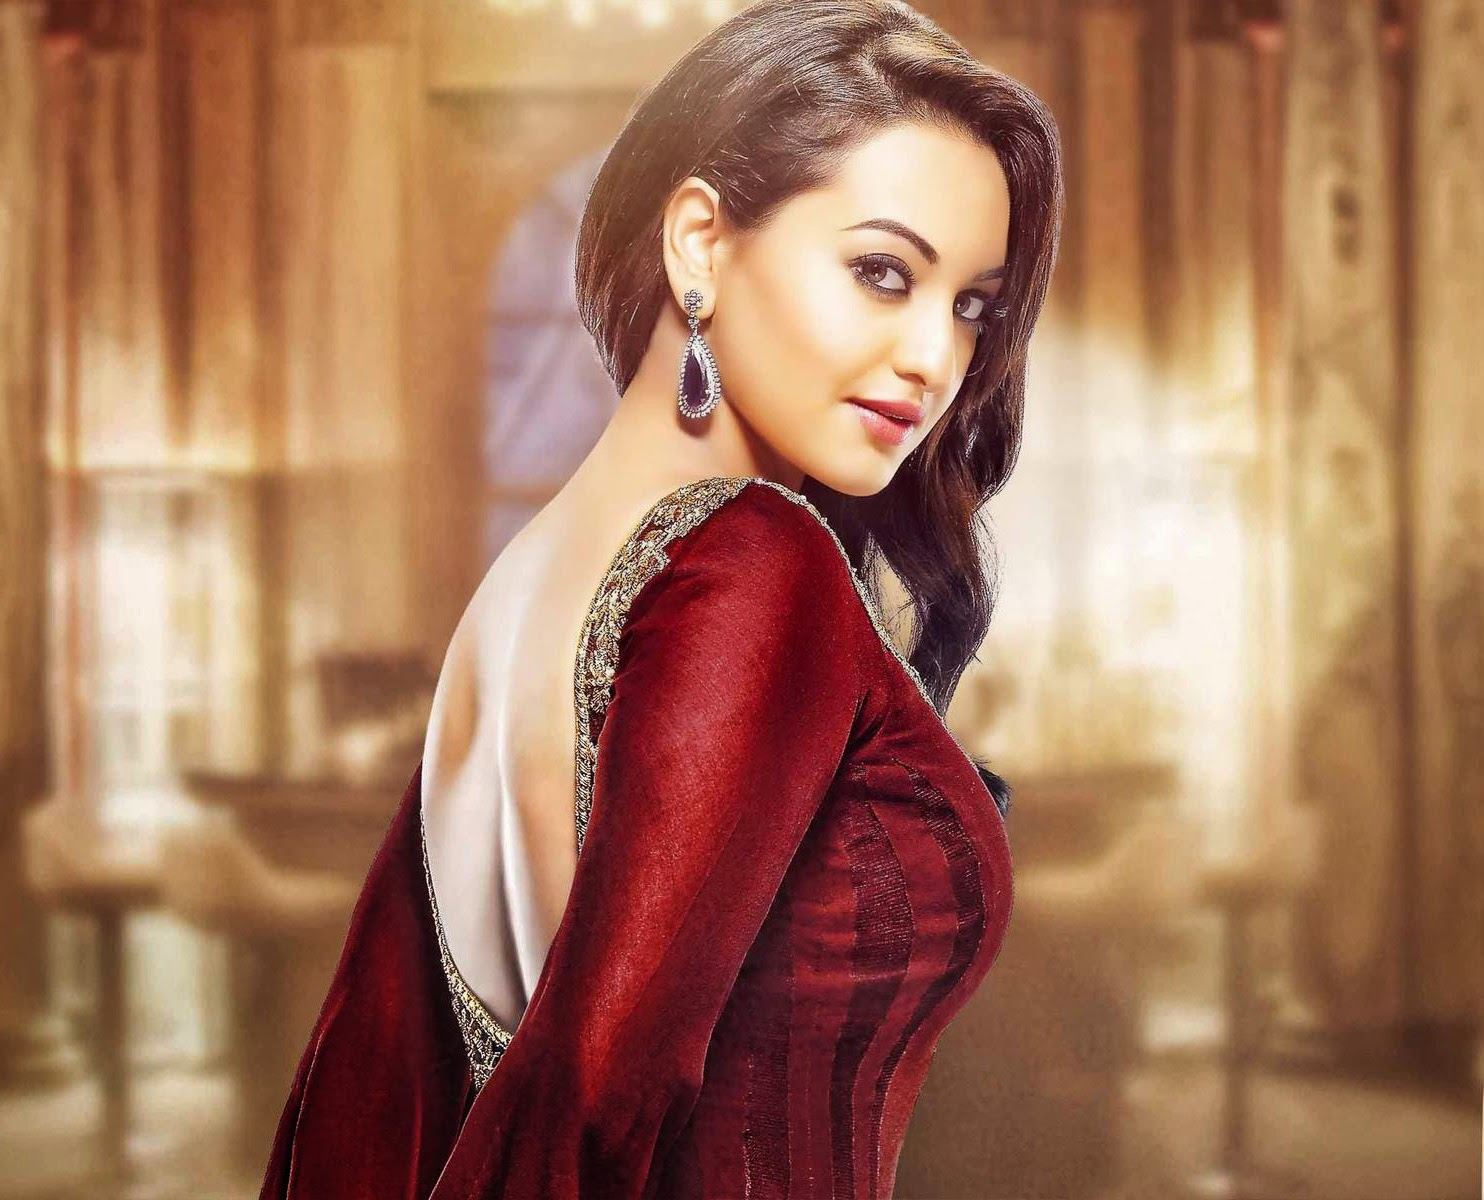 sonakshi sinha new hd wallpapers 2014 | beautiful world celebrities